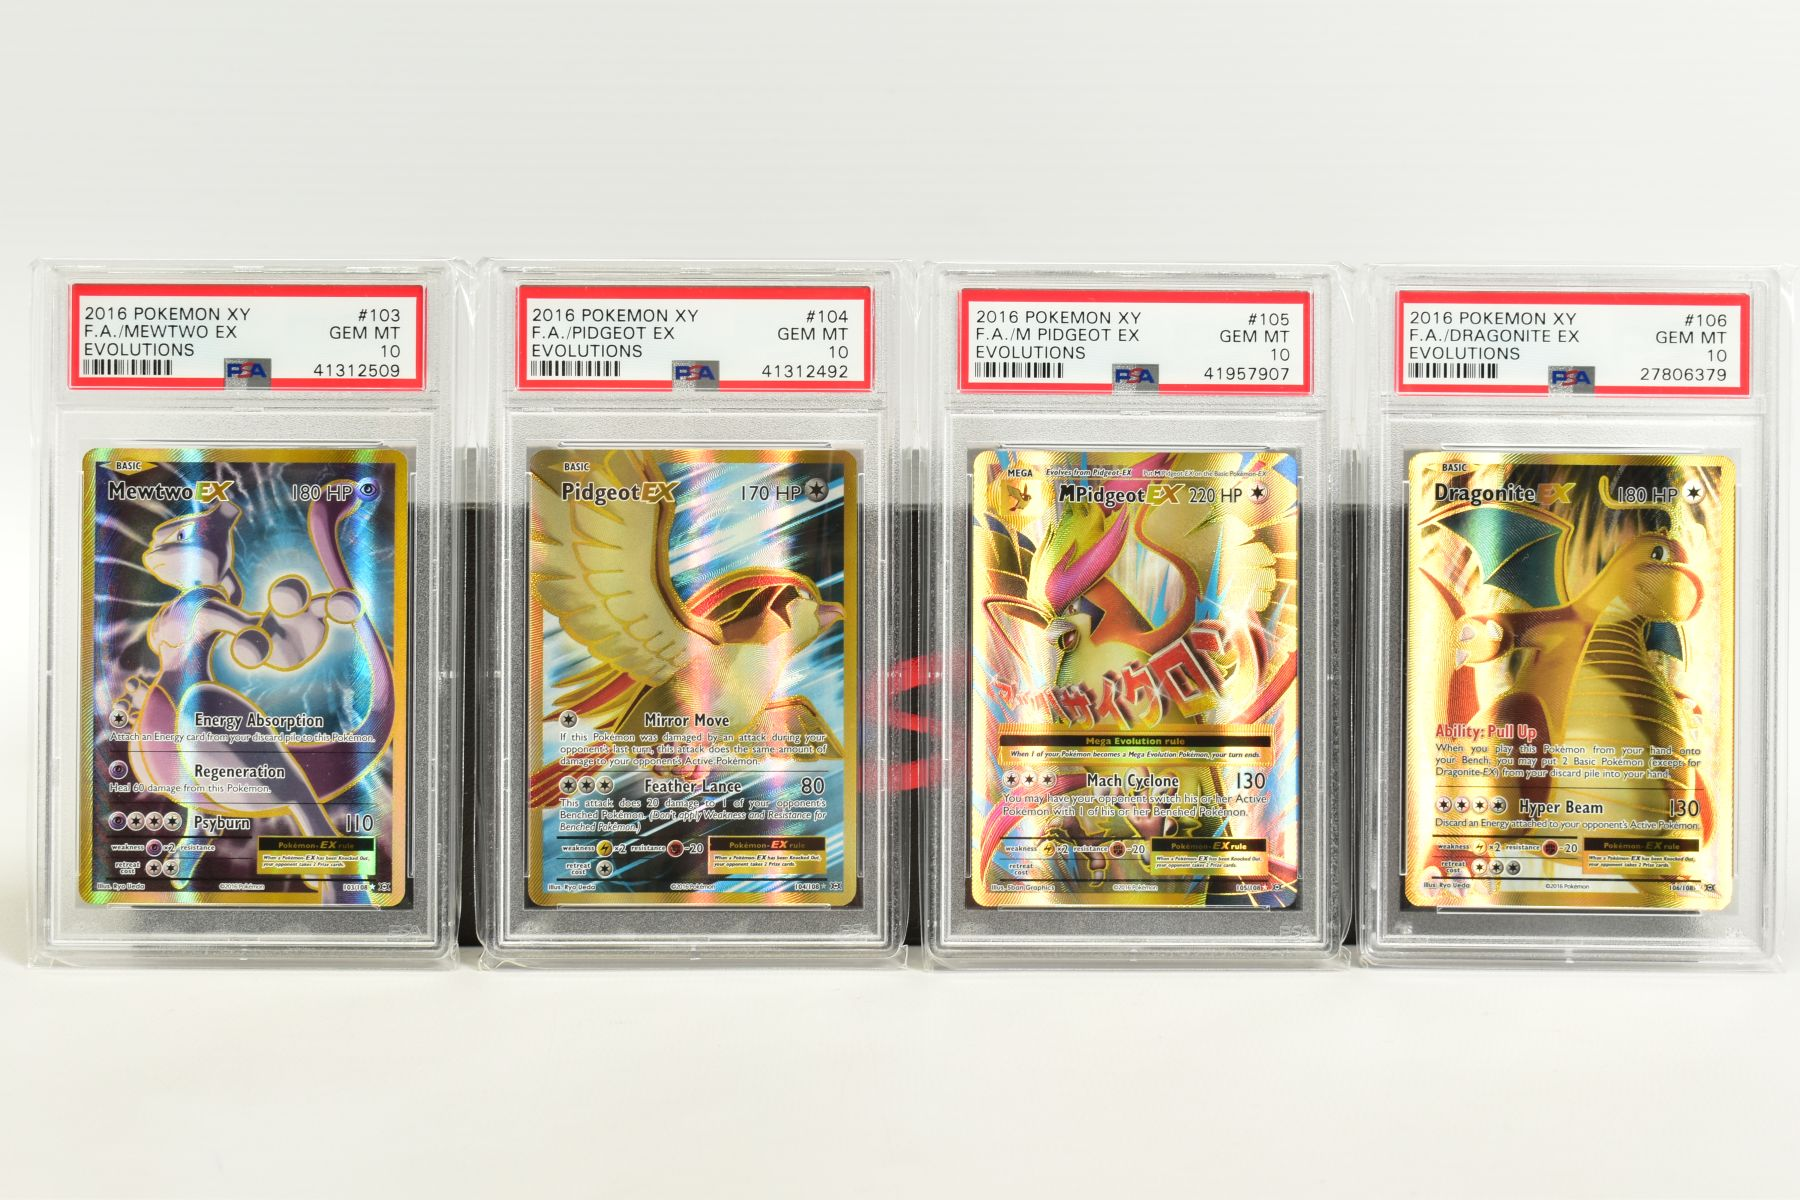 A QUANTITY OF PSA GRADED POKEMON XY EVOLUTIONS SET CARDS, all are graded GEM MINT 10 and are - Image 7 of 10